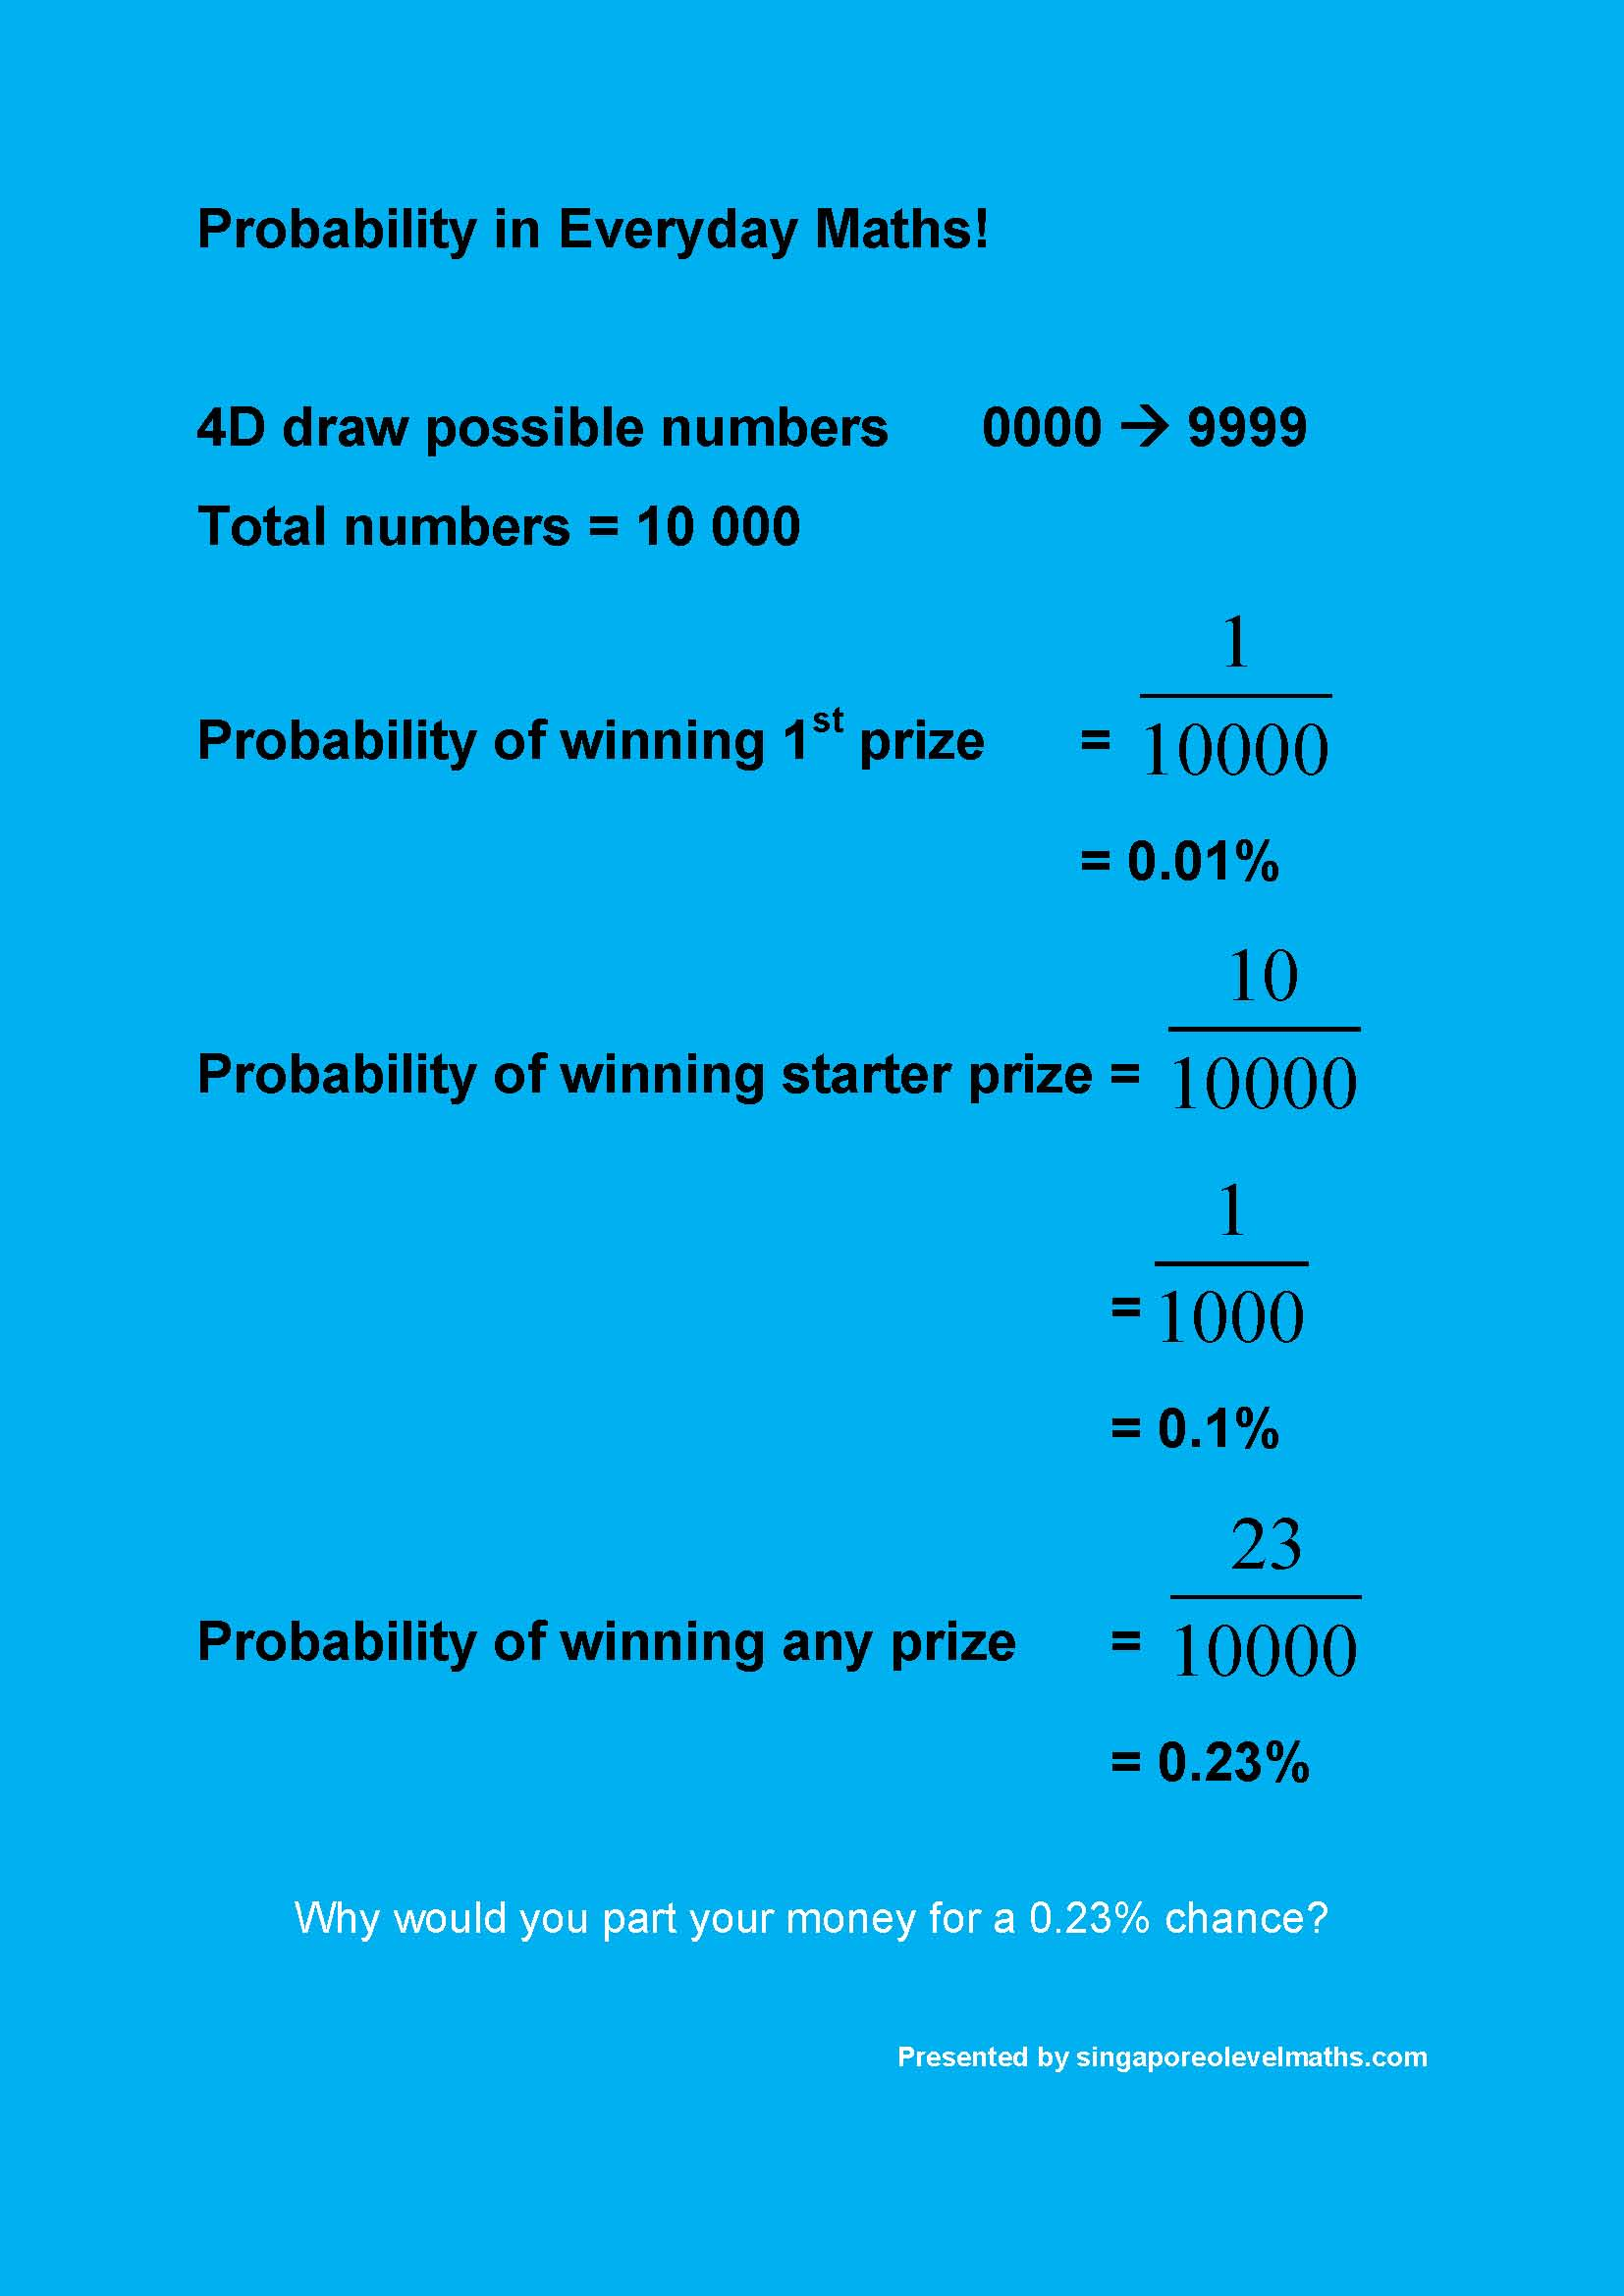 Probability in Everyday Maths